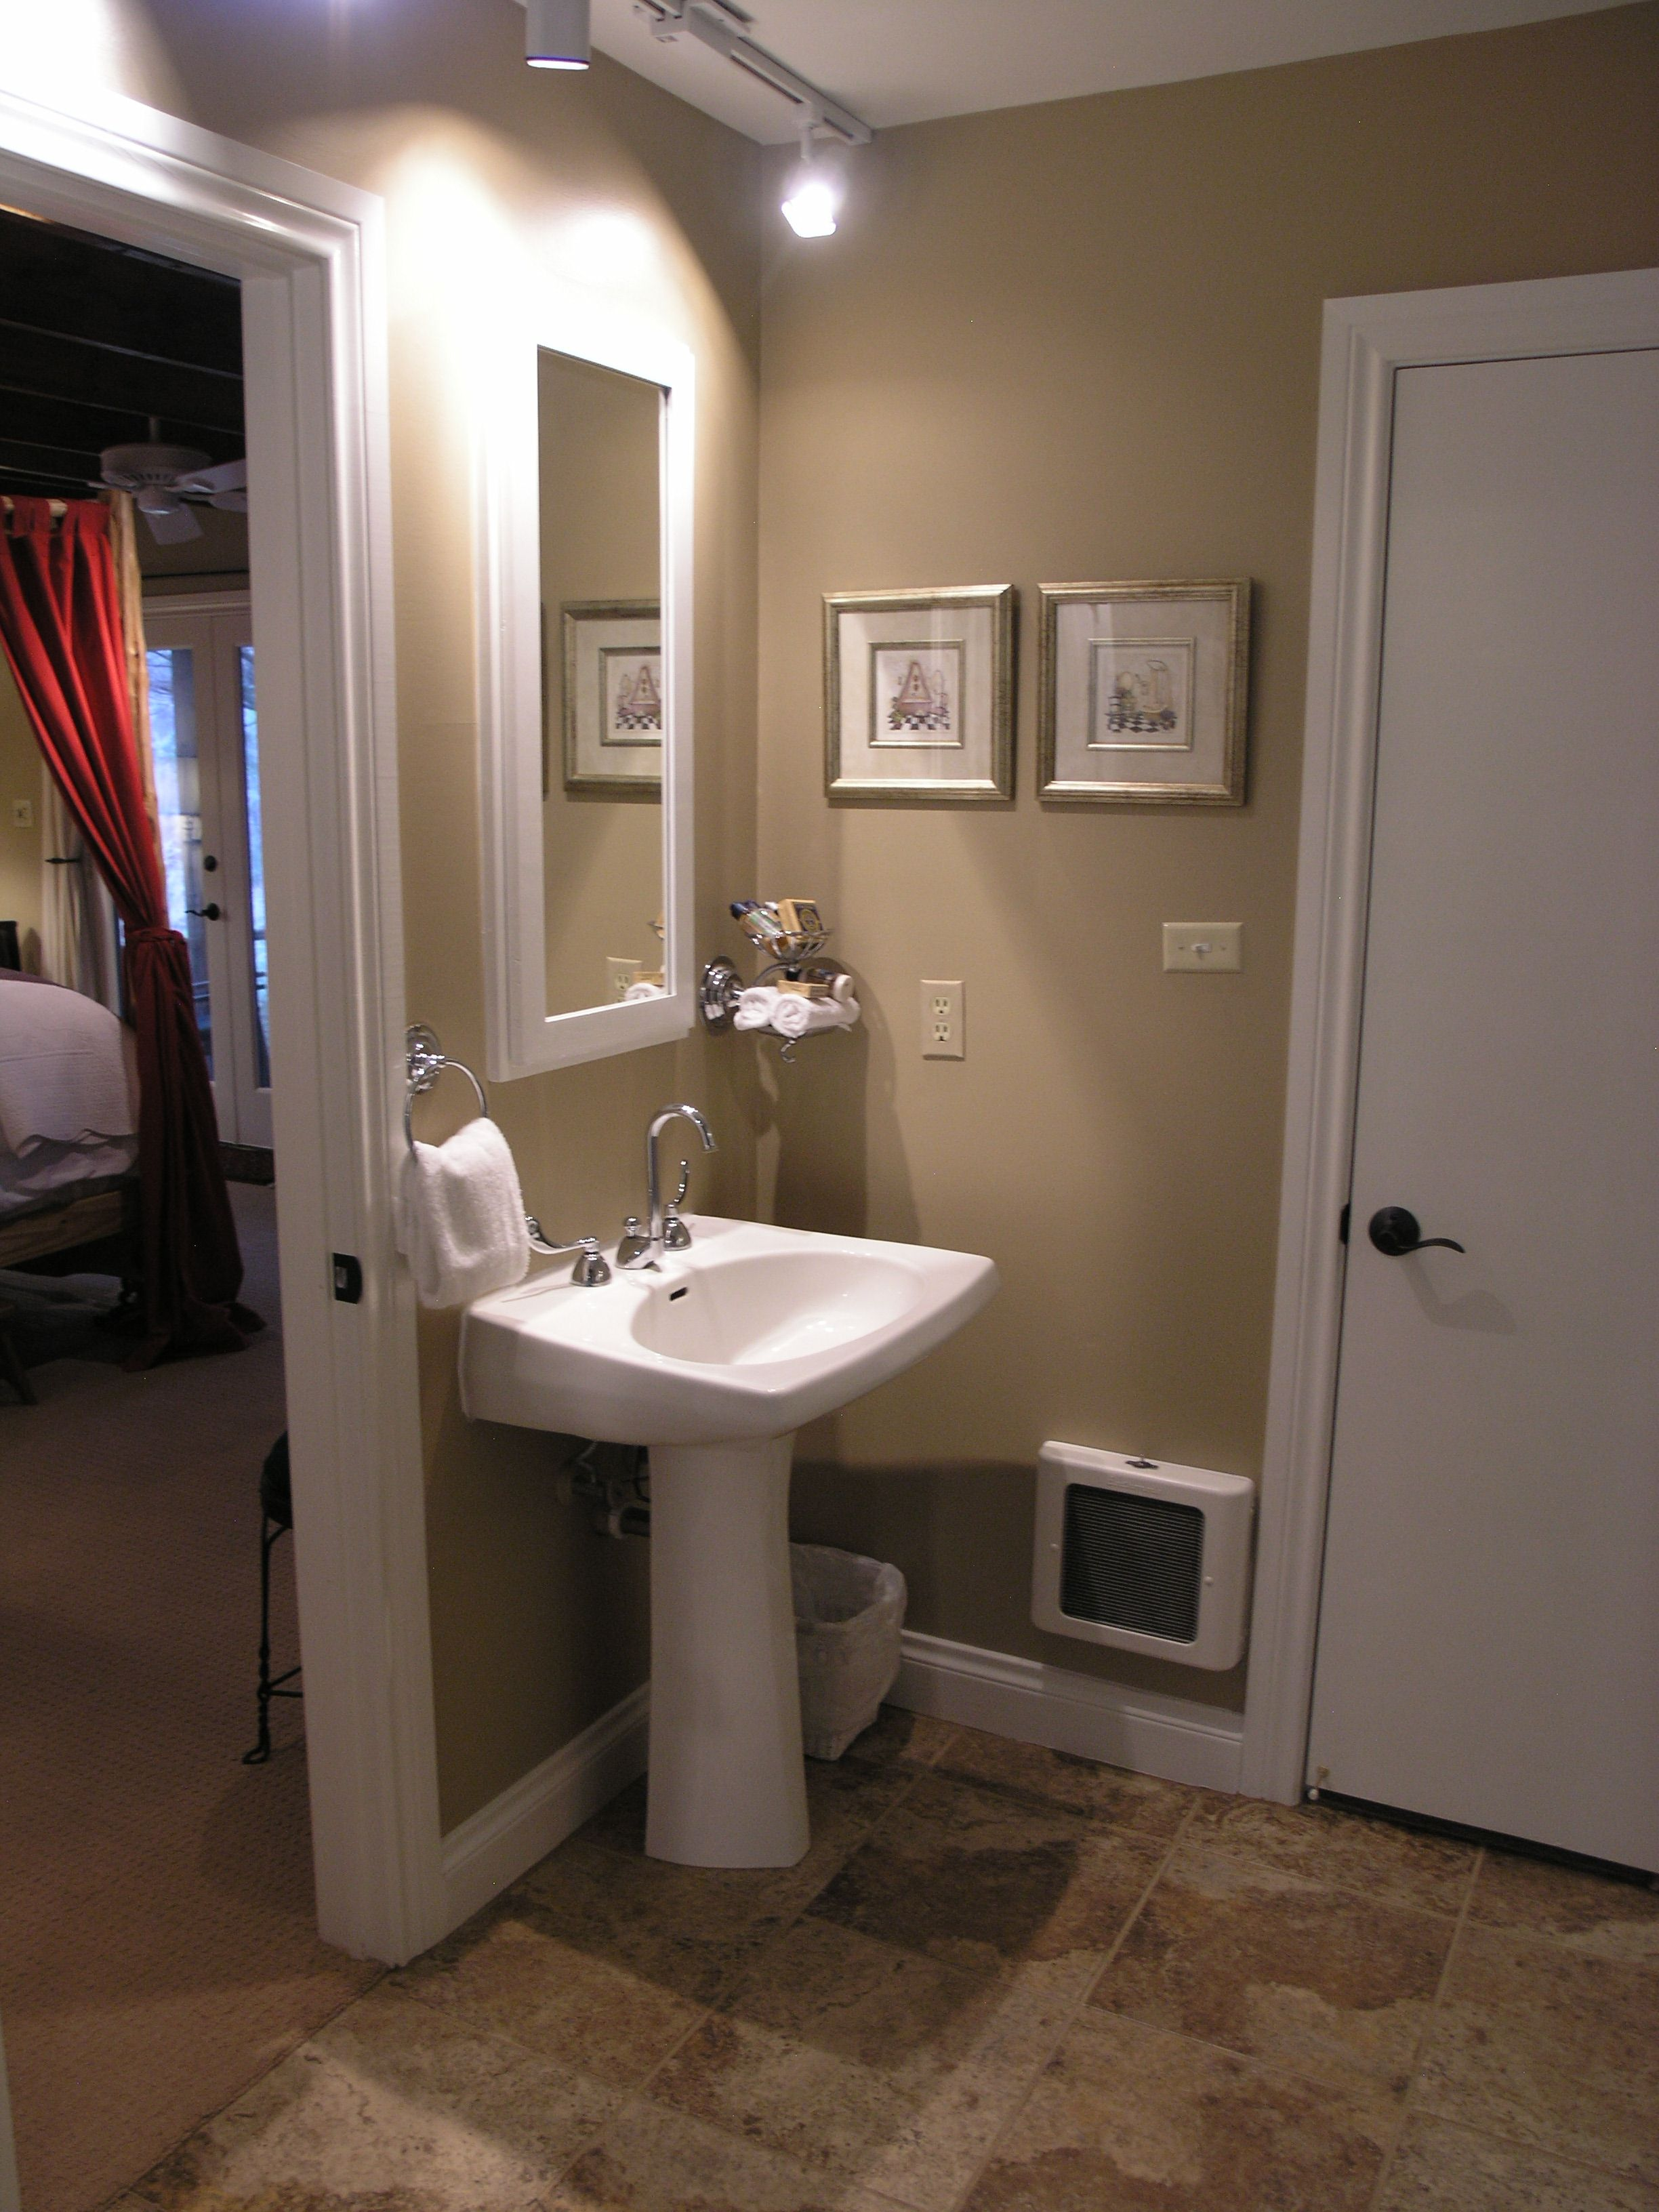 Cool Best Images About Tiny Bathrooms On Pinterest Toilets With